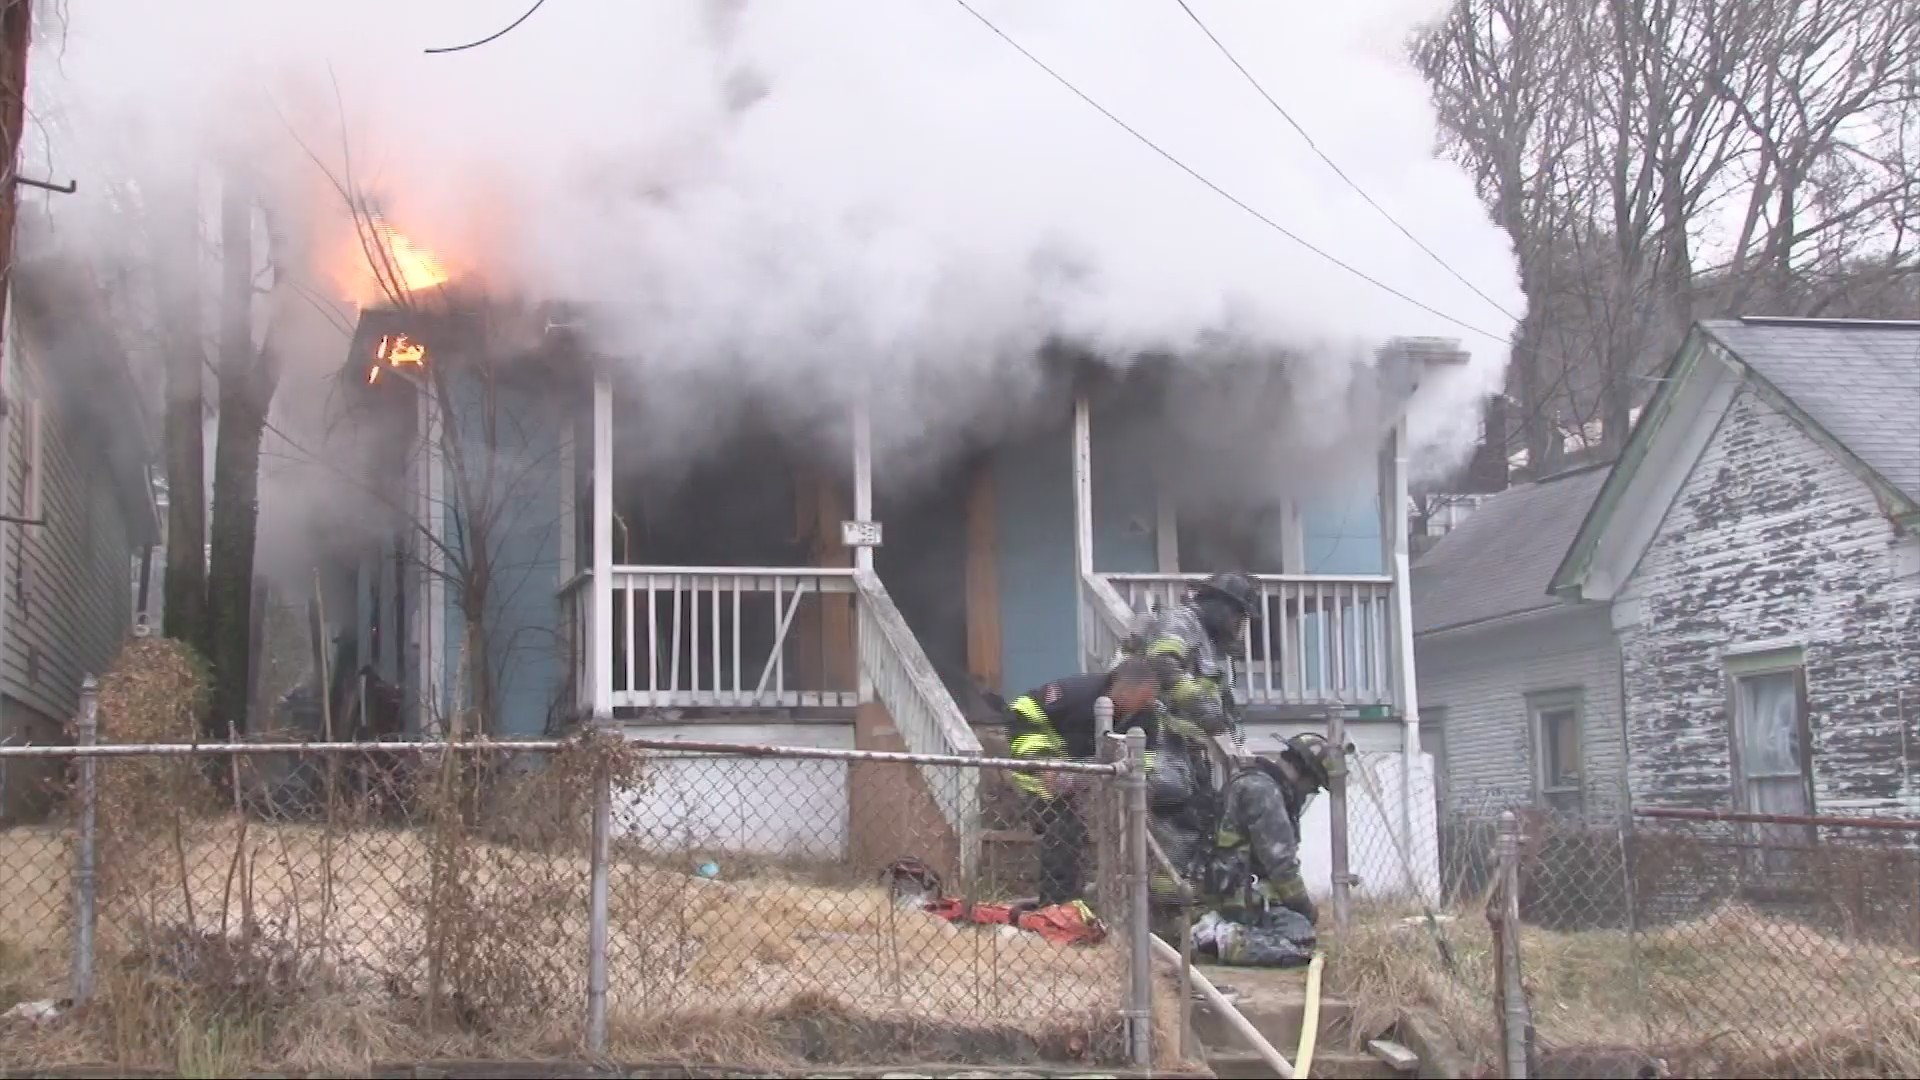 Charleston Sees Nearly 20 House Fires This Year